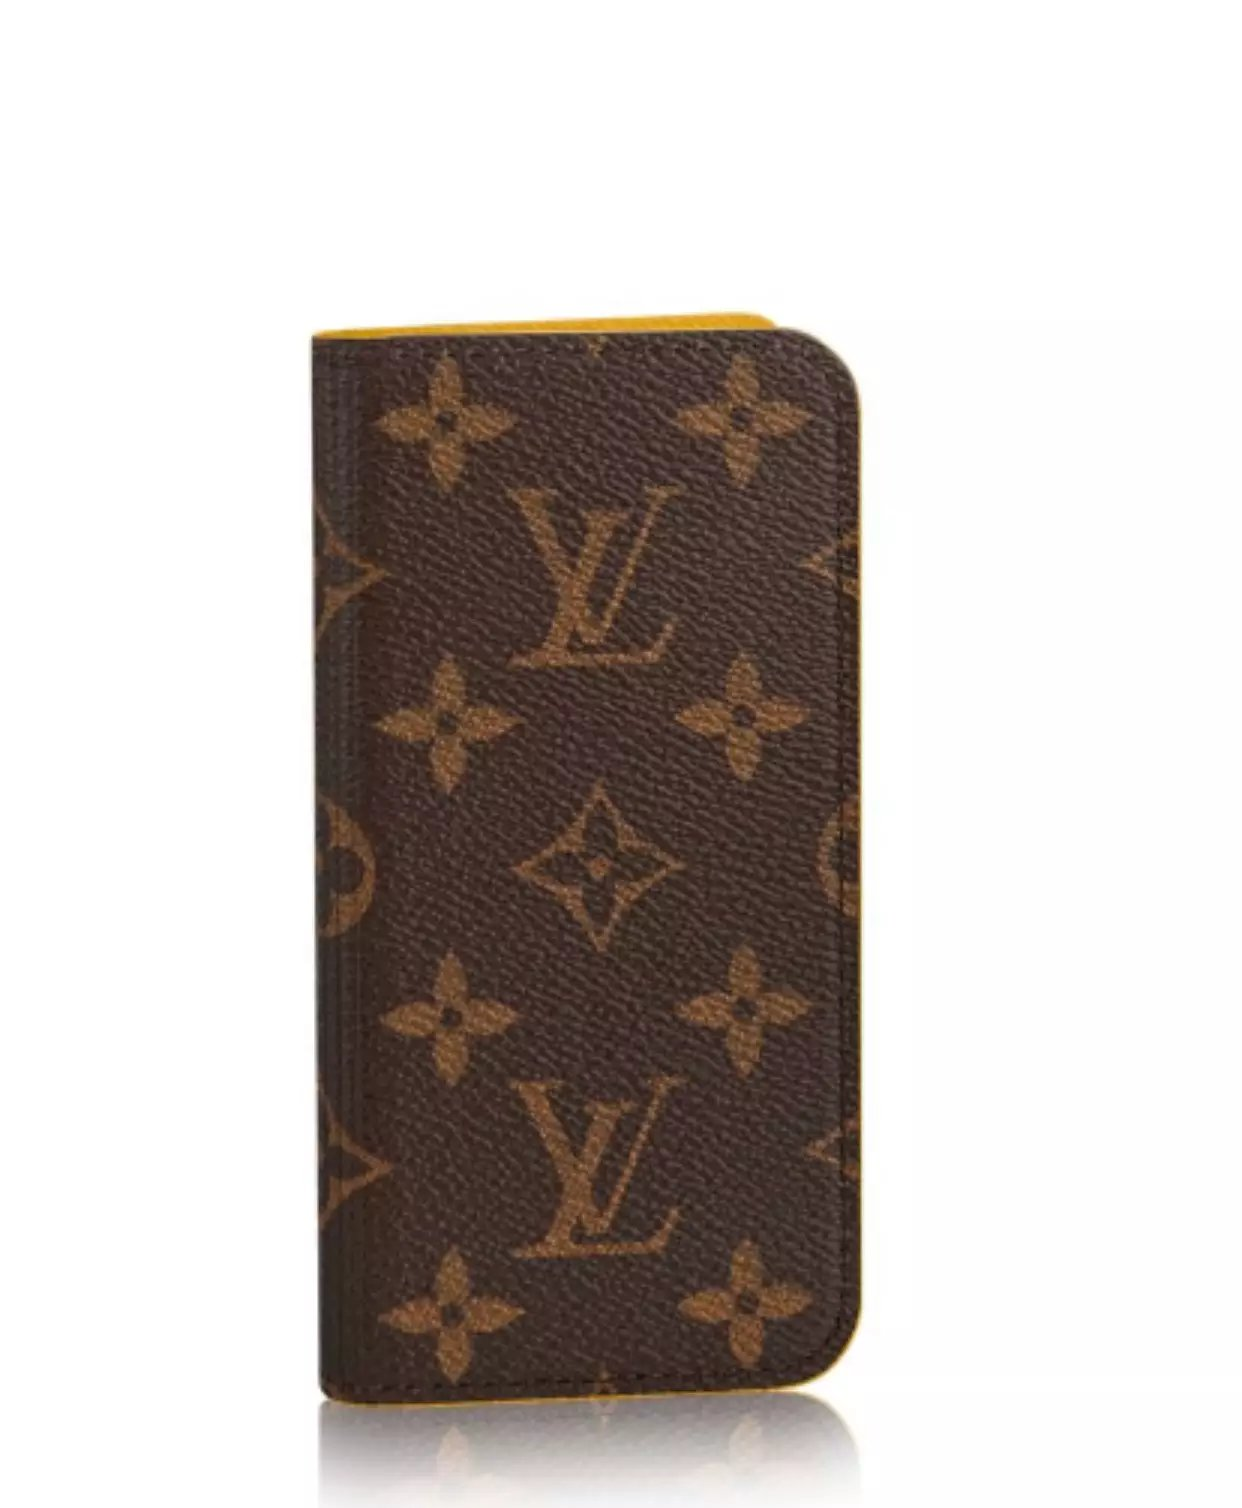 iphone hülle mit foto iphone hülle foto Louis Vuitton iphone6 hülle apple neuheiten gerüchte handyhülle silikon 6 leder ca6 holz cover iphone 6 hülle für iphone 6 s handy cover